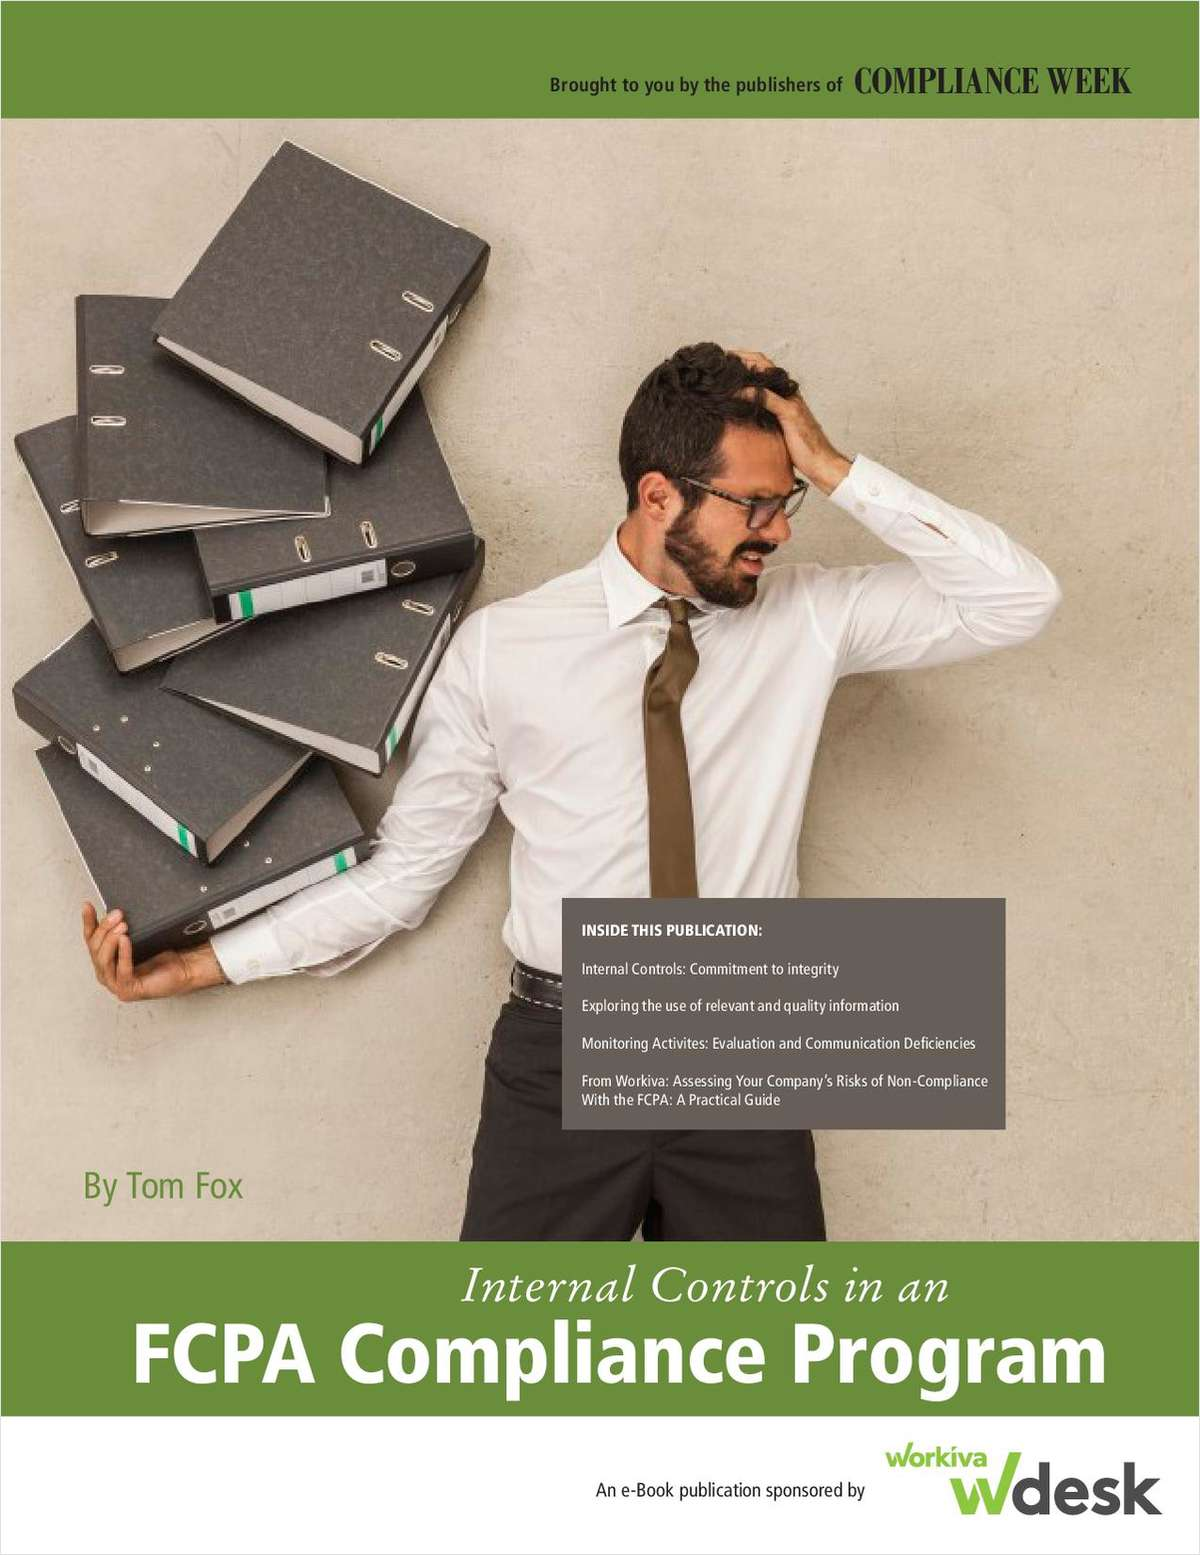 Internal Controls in an FCPA Compliance Program